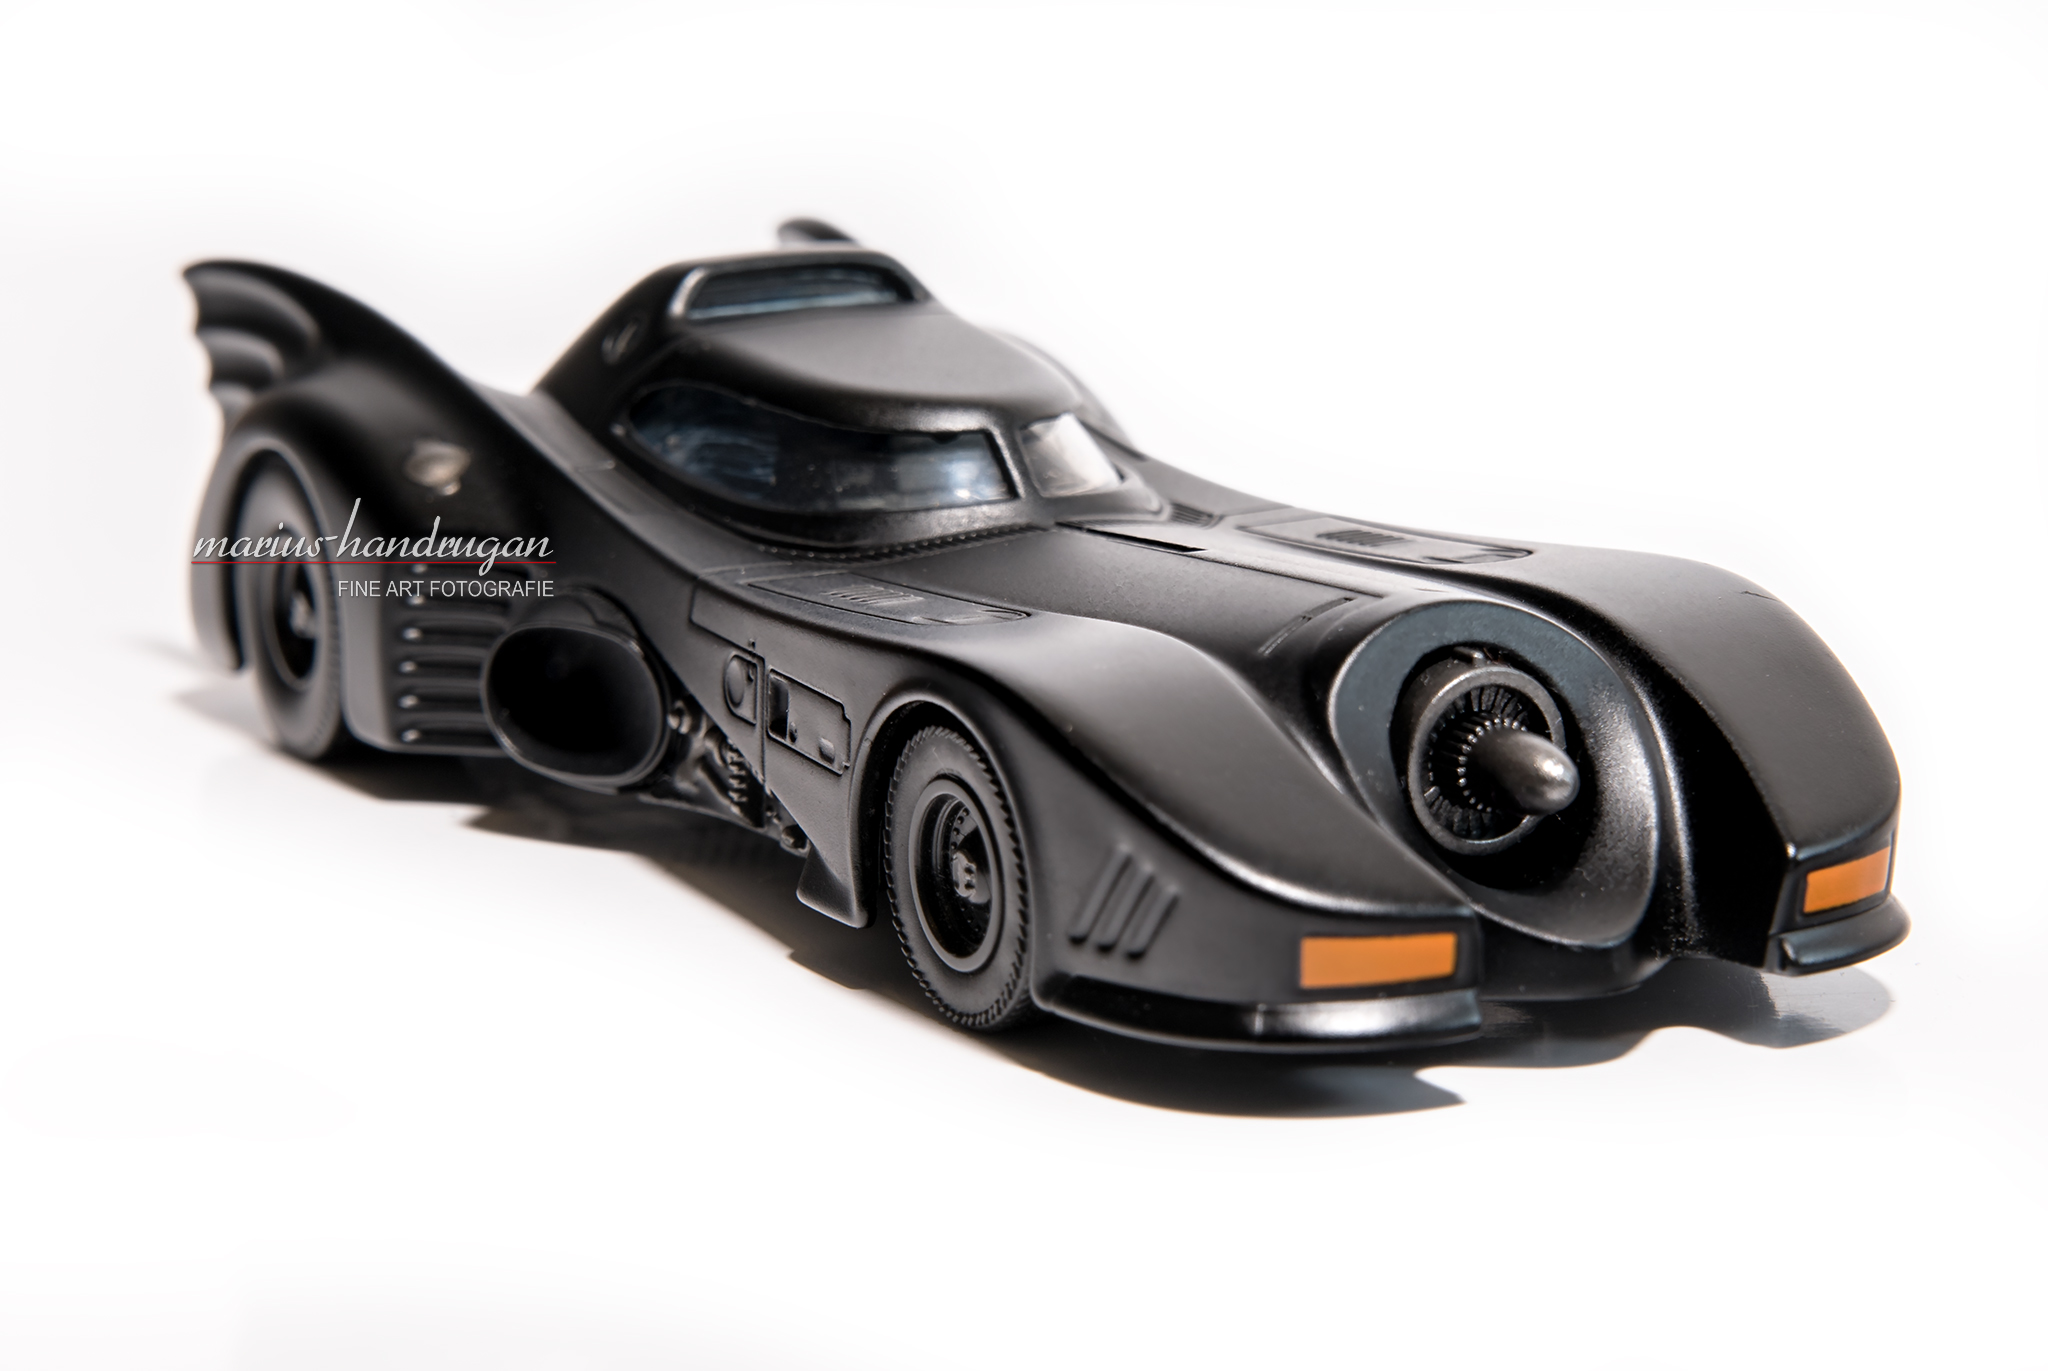 batmobil batman hot wheels matchbox modelauto spielzeug composing nik 0620 marius handrugan. Black Bedroom Furniture Sets. Home Design Ideas